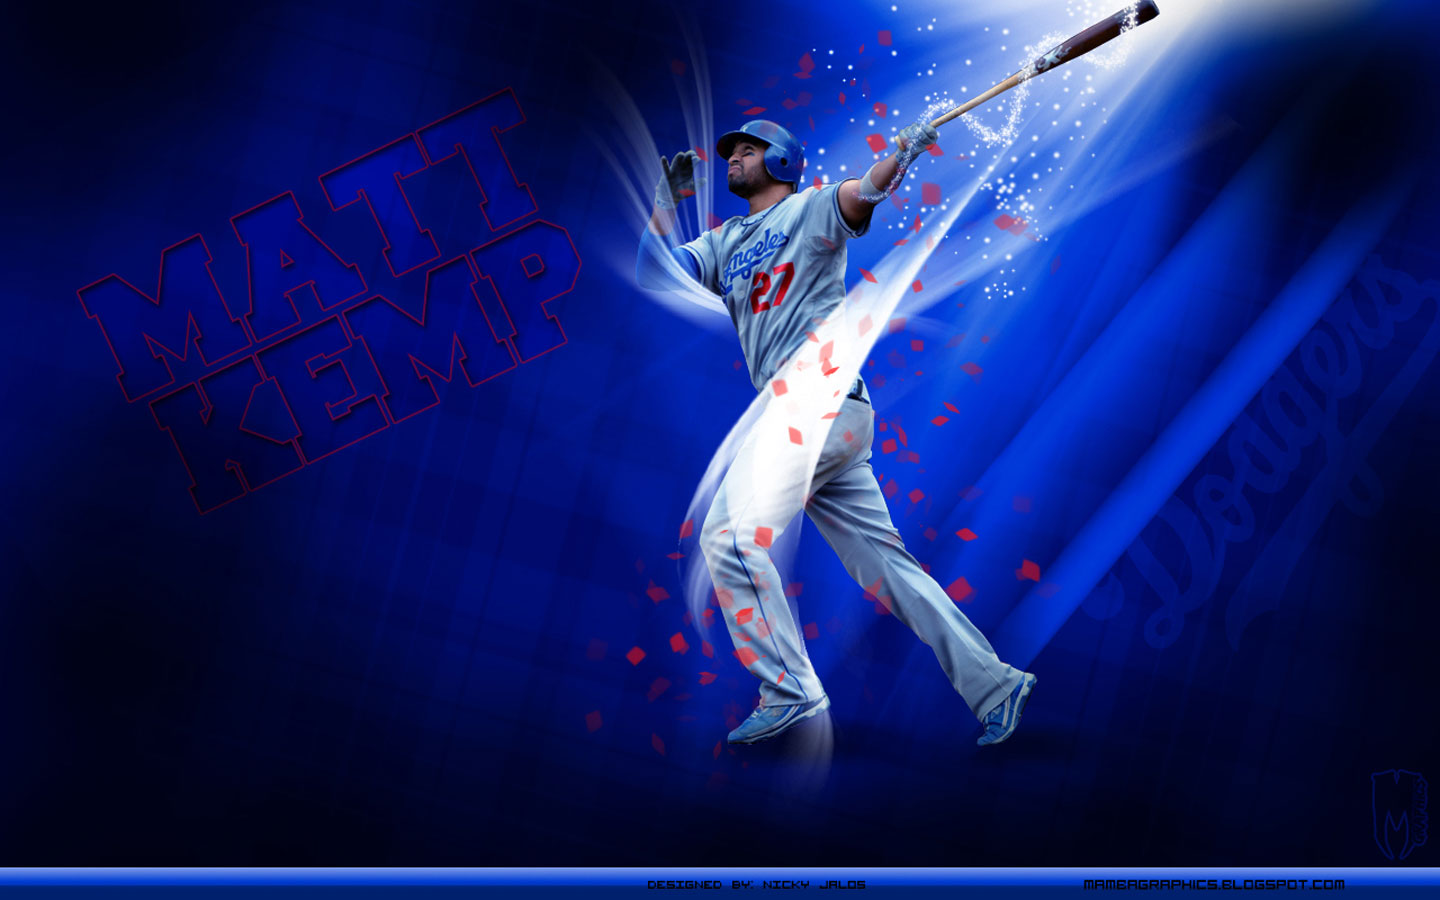 Los Angeles Dodgers wallpapers Los Angeles Dodgers background   Page 1440x900